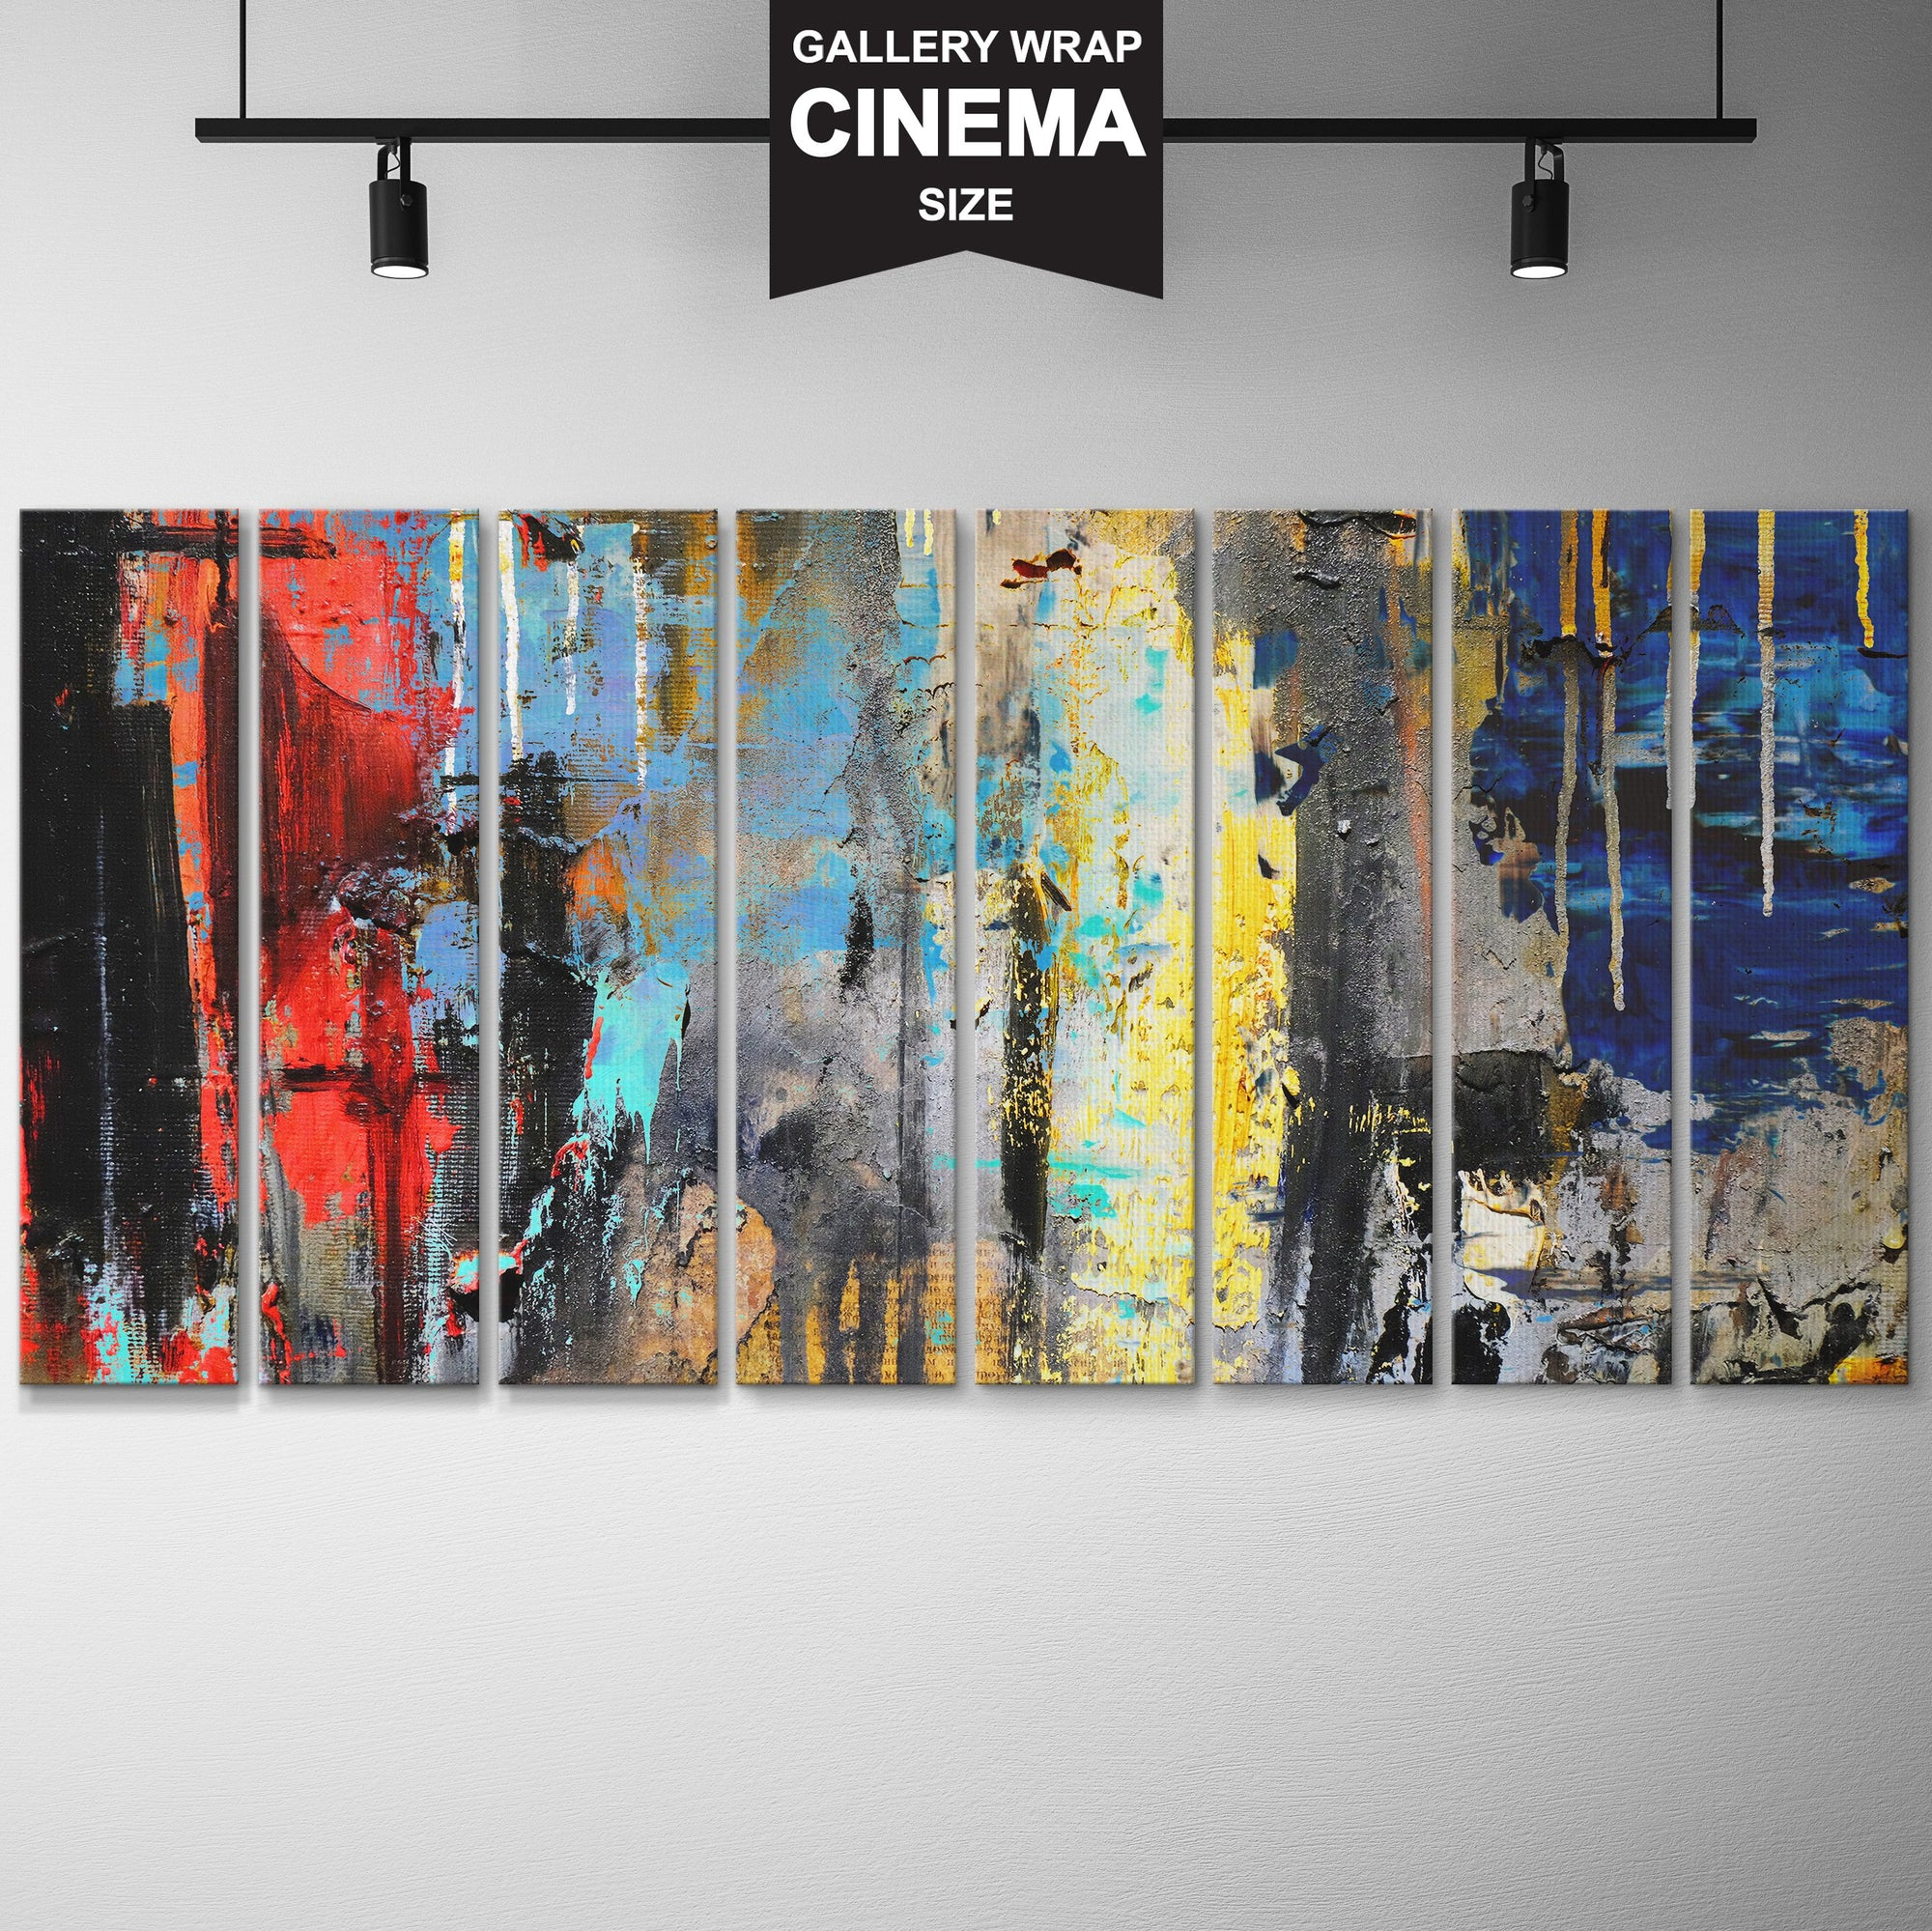 ABSTRACT COLOR POP CINEMA